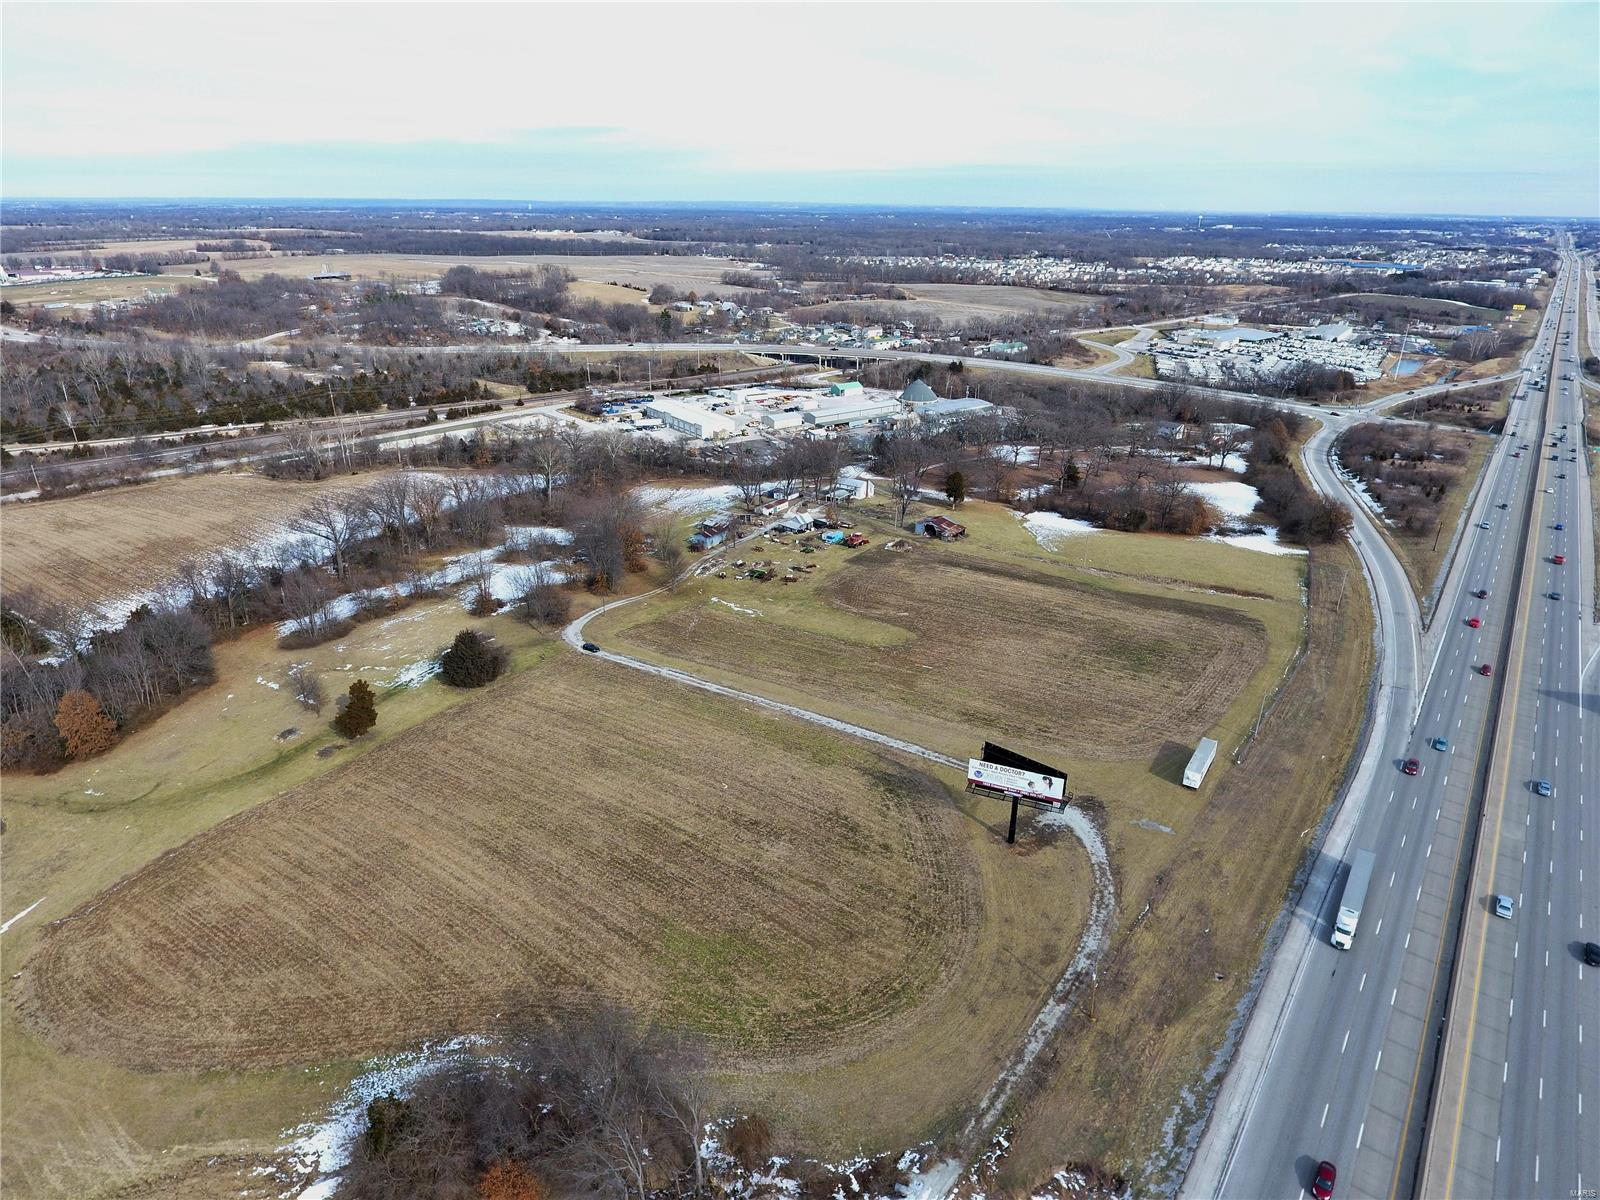 Prime property located at the intersection of I70 and Hwy A interchange in Wentzville. Located just over 1 mile to General Motors plant. Totaling 63+/- acres of gently rolling ground with a lake on site. This is a great piece for a large user or for an industrial or commercial business park. Priced at $80,000 per acre it could be a multi-use development with residential and commercial. The property currently has 2 billboard signs the produce income as well as two homes that will most likely be tear downs. 12-inch water main on E Pitman and 4-inch pressurized sewer main on E Pitman (lift station will be required). The property has 2400 feet of frontage on I70. I70 has over 75,000 vehicles per day. Located in the city limits of fast-growing Wentzville. Possible frontage road along I70 proposed via Continental Drive extension. Located just down I70 from the new 43-acre campus for Urshan College opening soon!